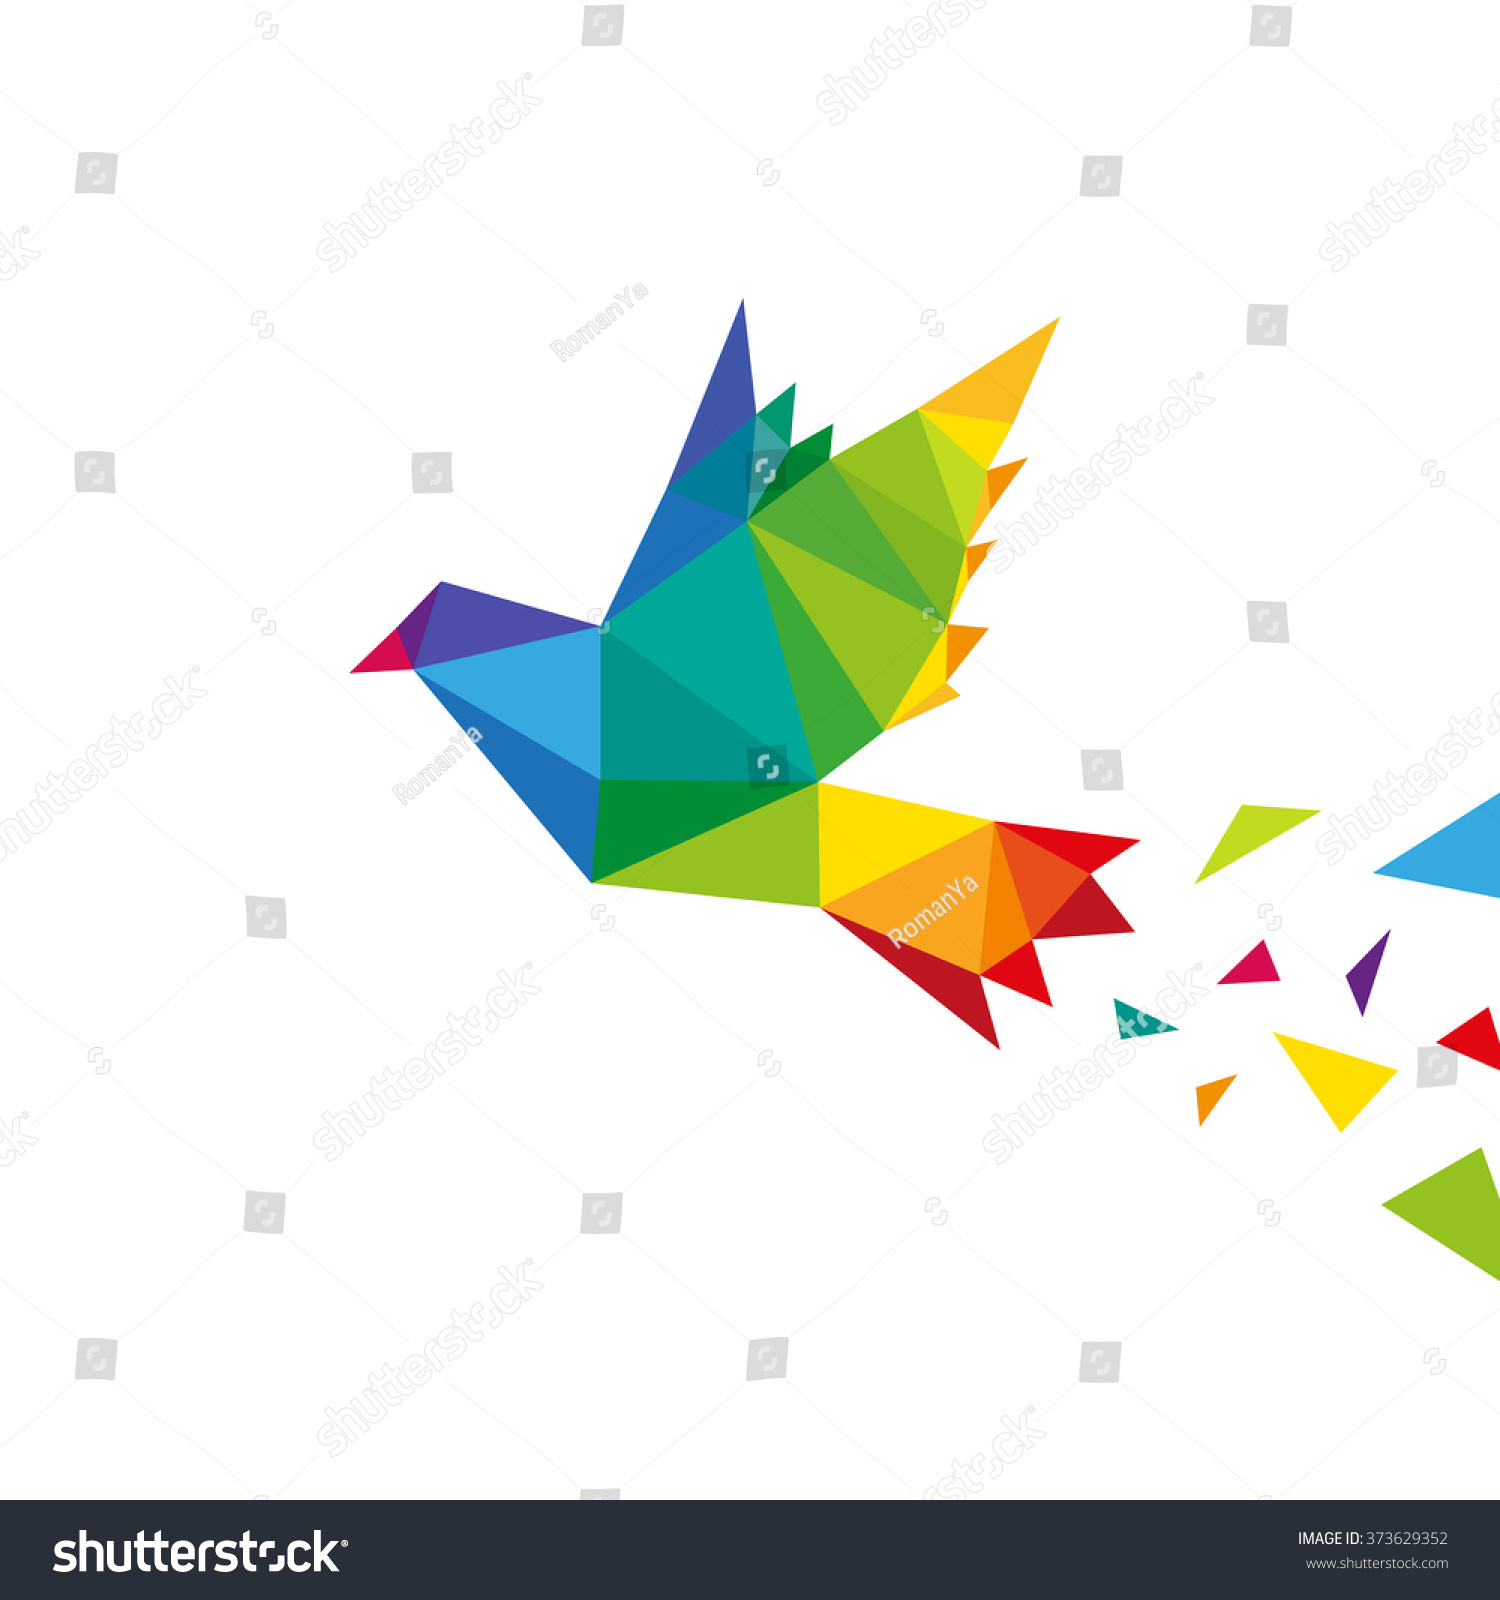 Bird abstract triangle design concept element stock vector for Triangle concept architecture